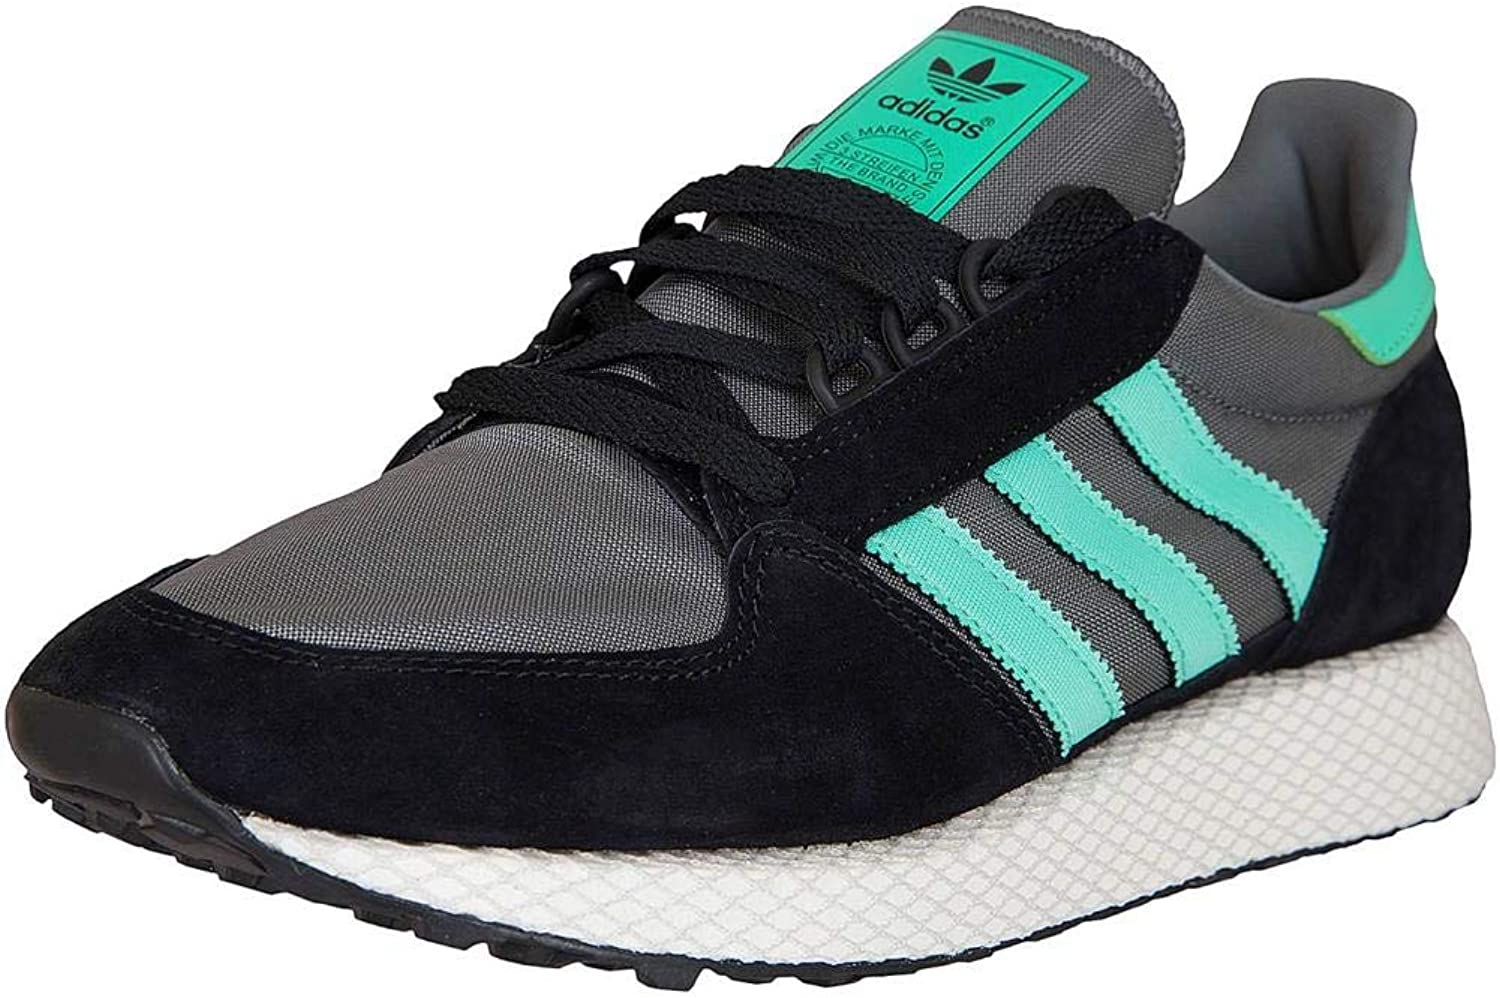 Adidas Men's Forest Grove Fitness shoes